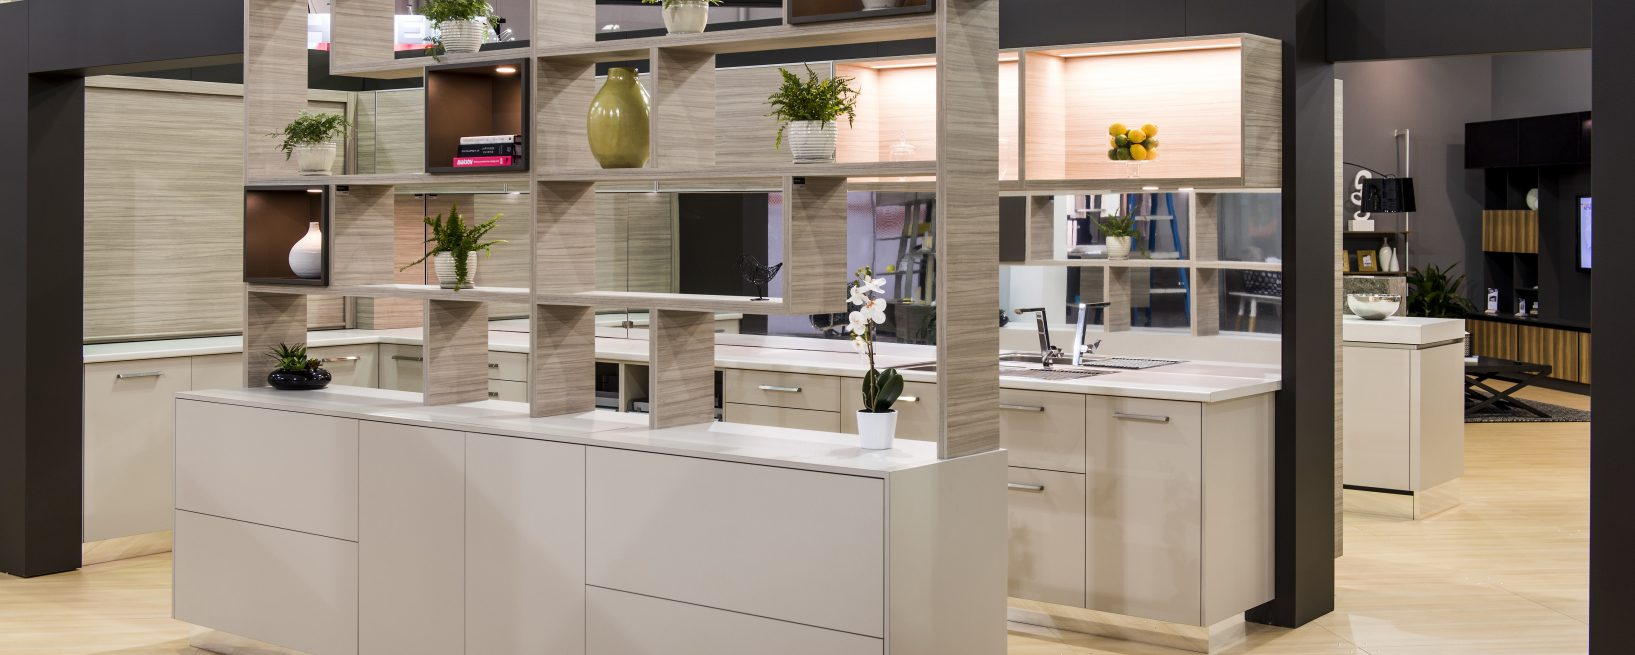 Lincoln Sentry - Kitchen Showroom